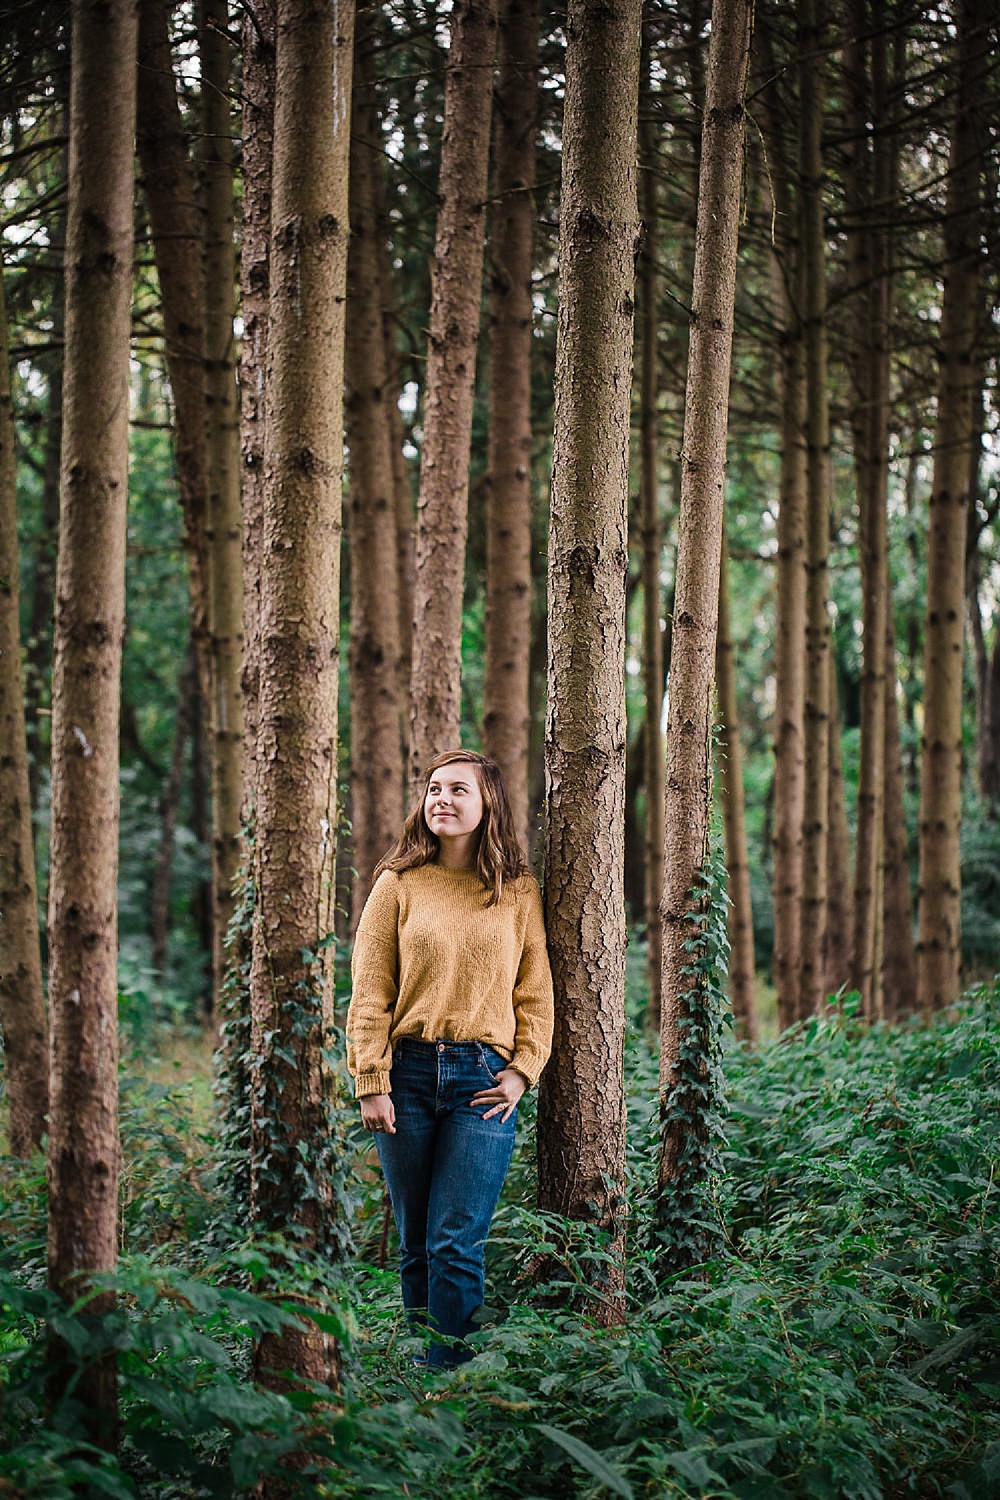 Lancaster senior session photo of a young girl in a yellow sweater and jeans standing in a pine forest.